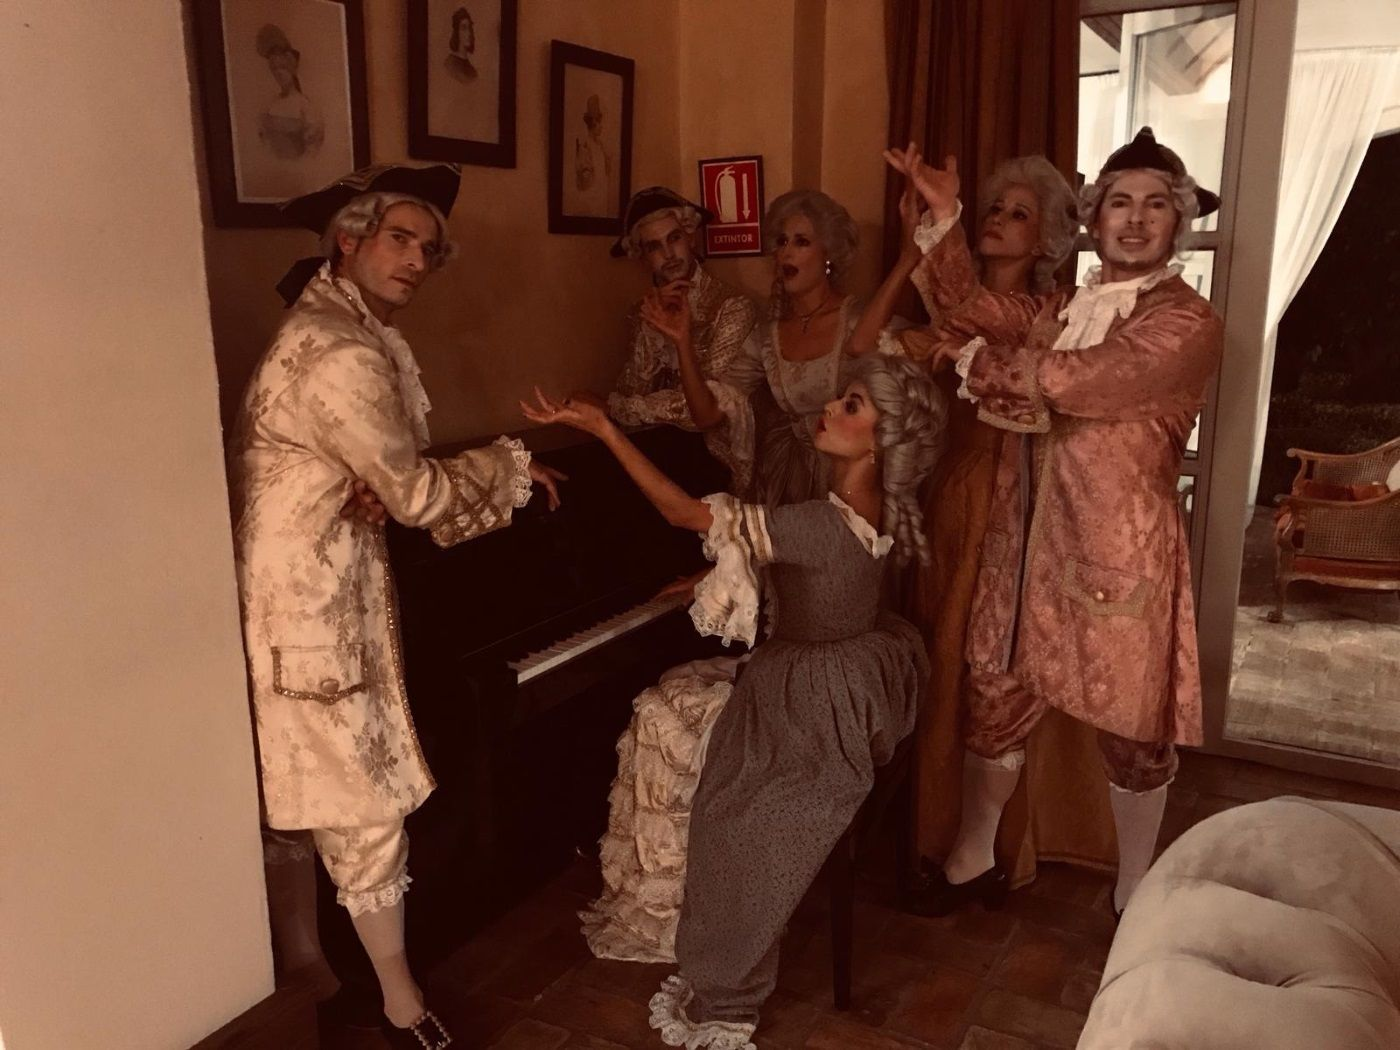 Themed private event at the Monastery of Saint Martin in Montenegral